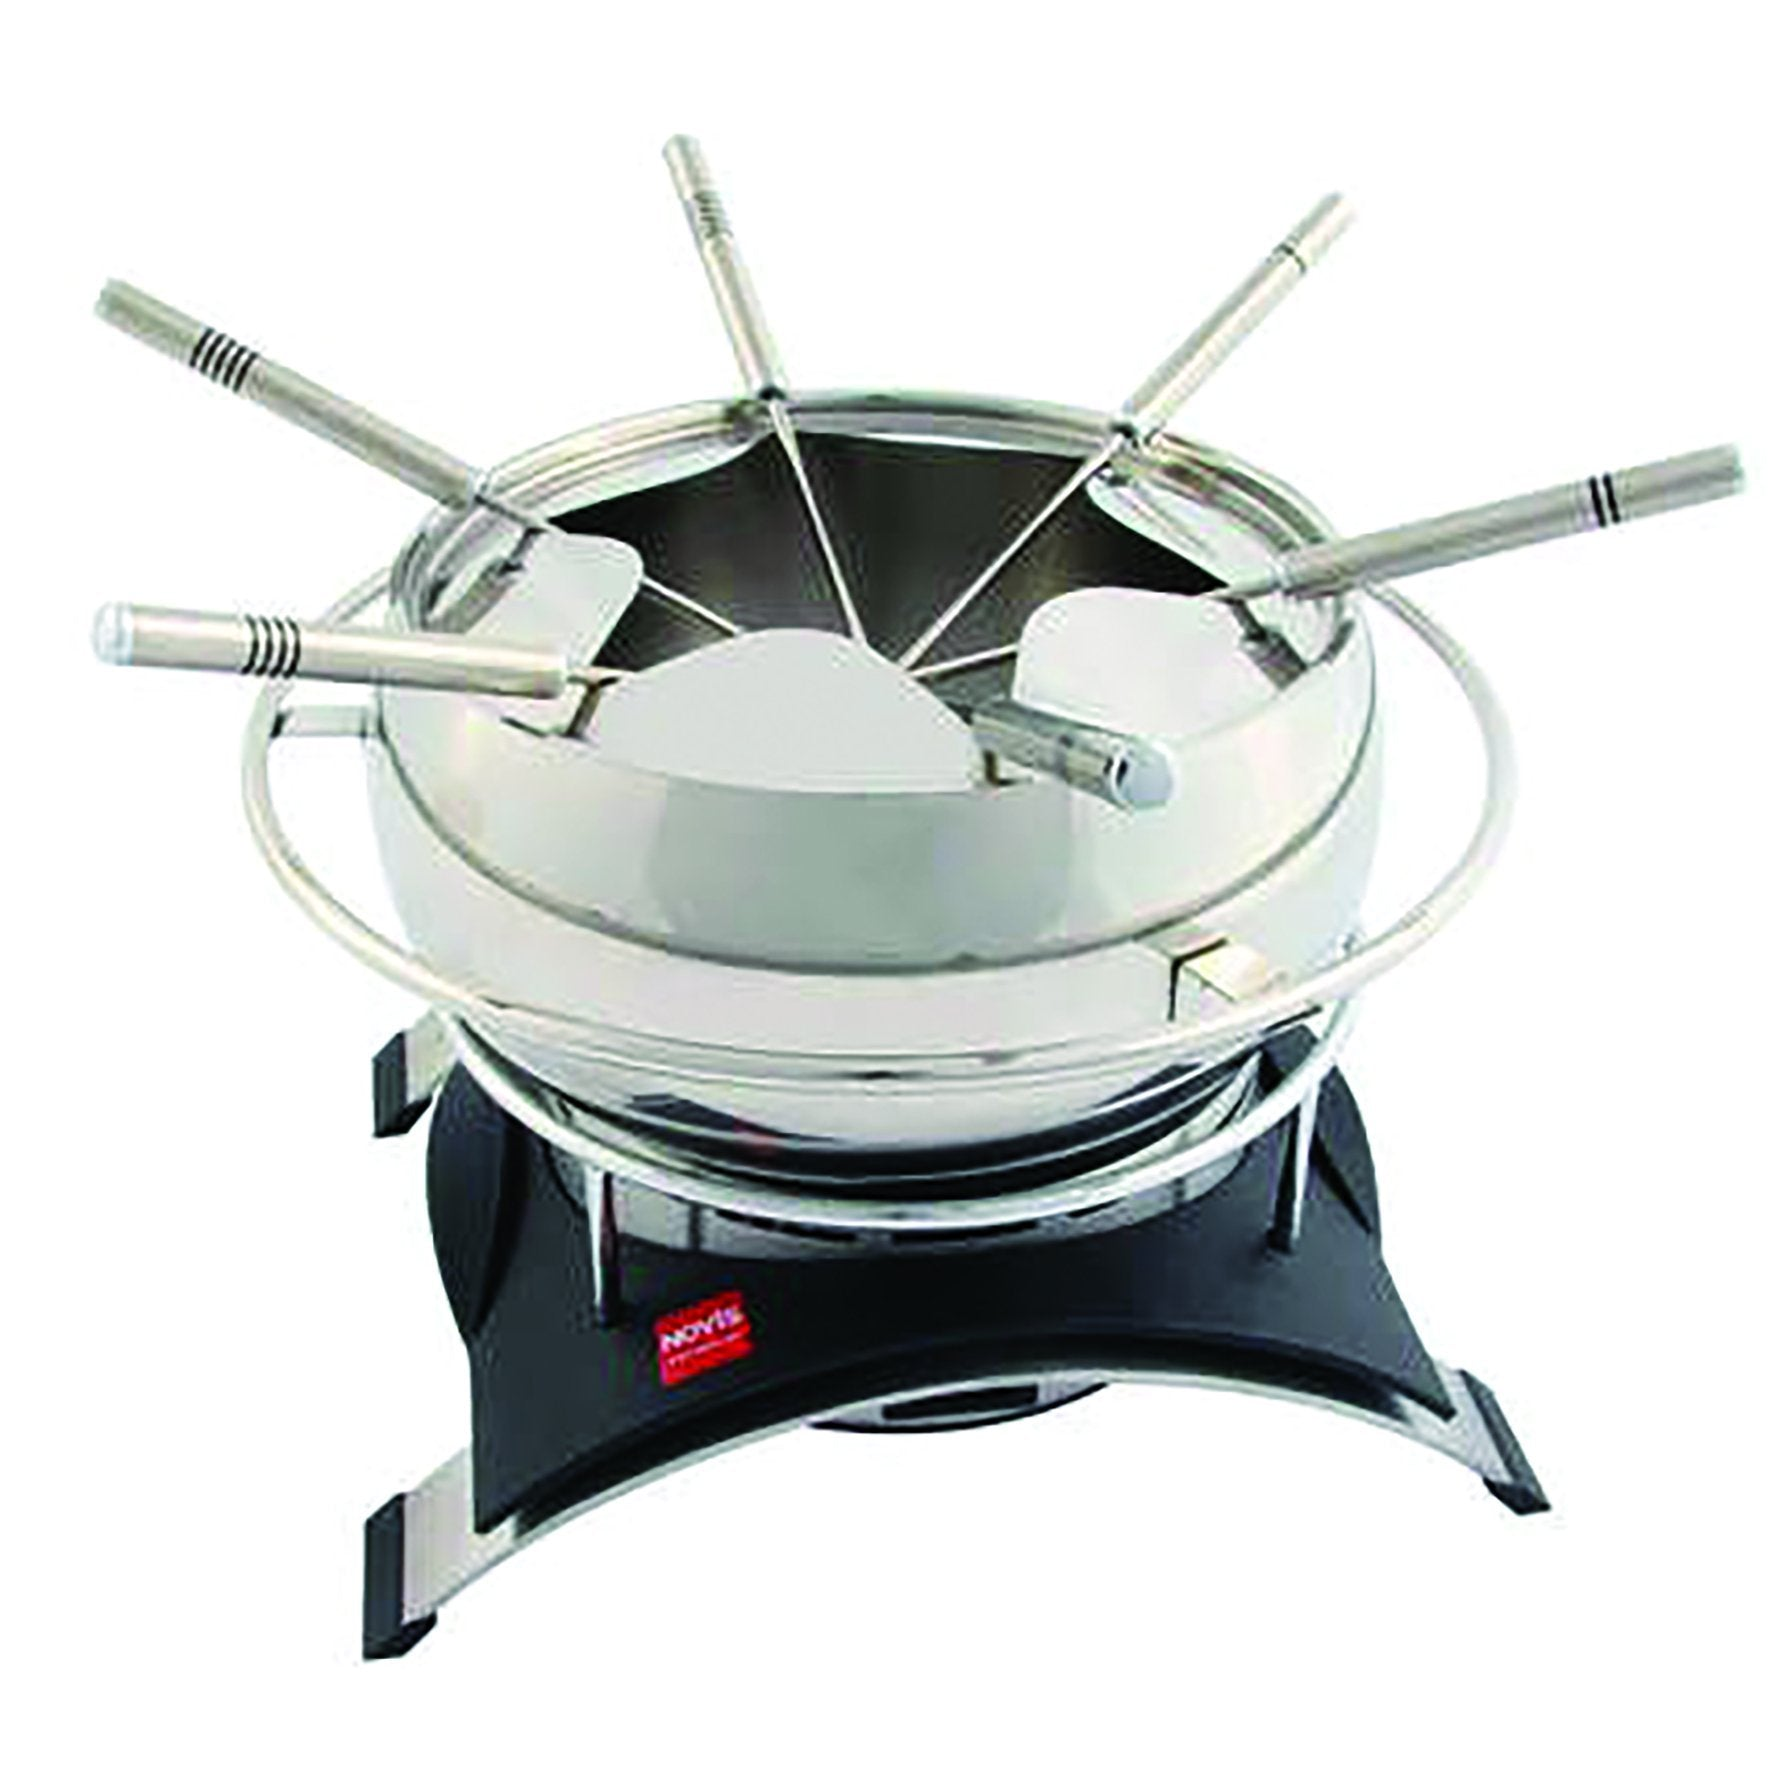 Novis Electric Fondue Set